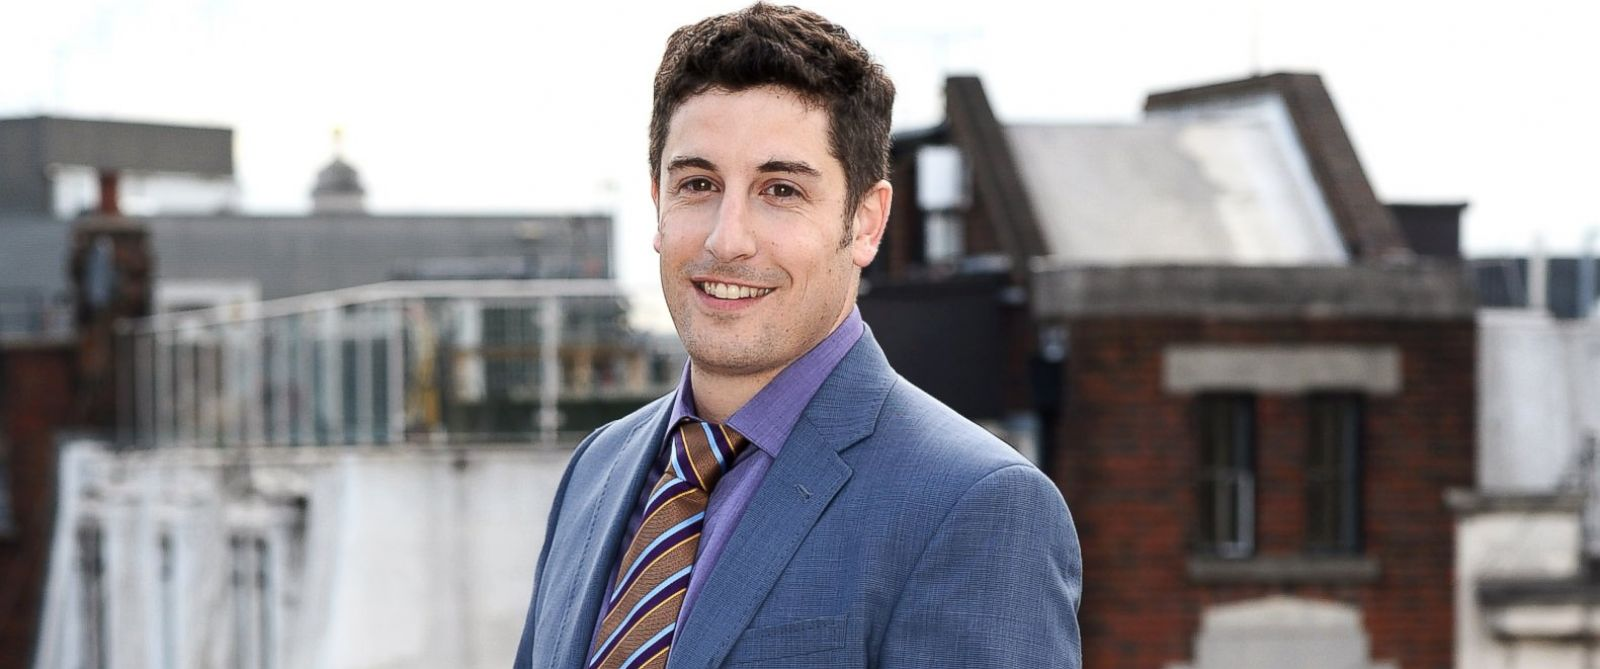 """PHOTO: Jason Biggs attends a photocall for """"Orange Is The New Black"""" at Soho Hotel on May 29, 2014 in London."""